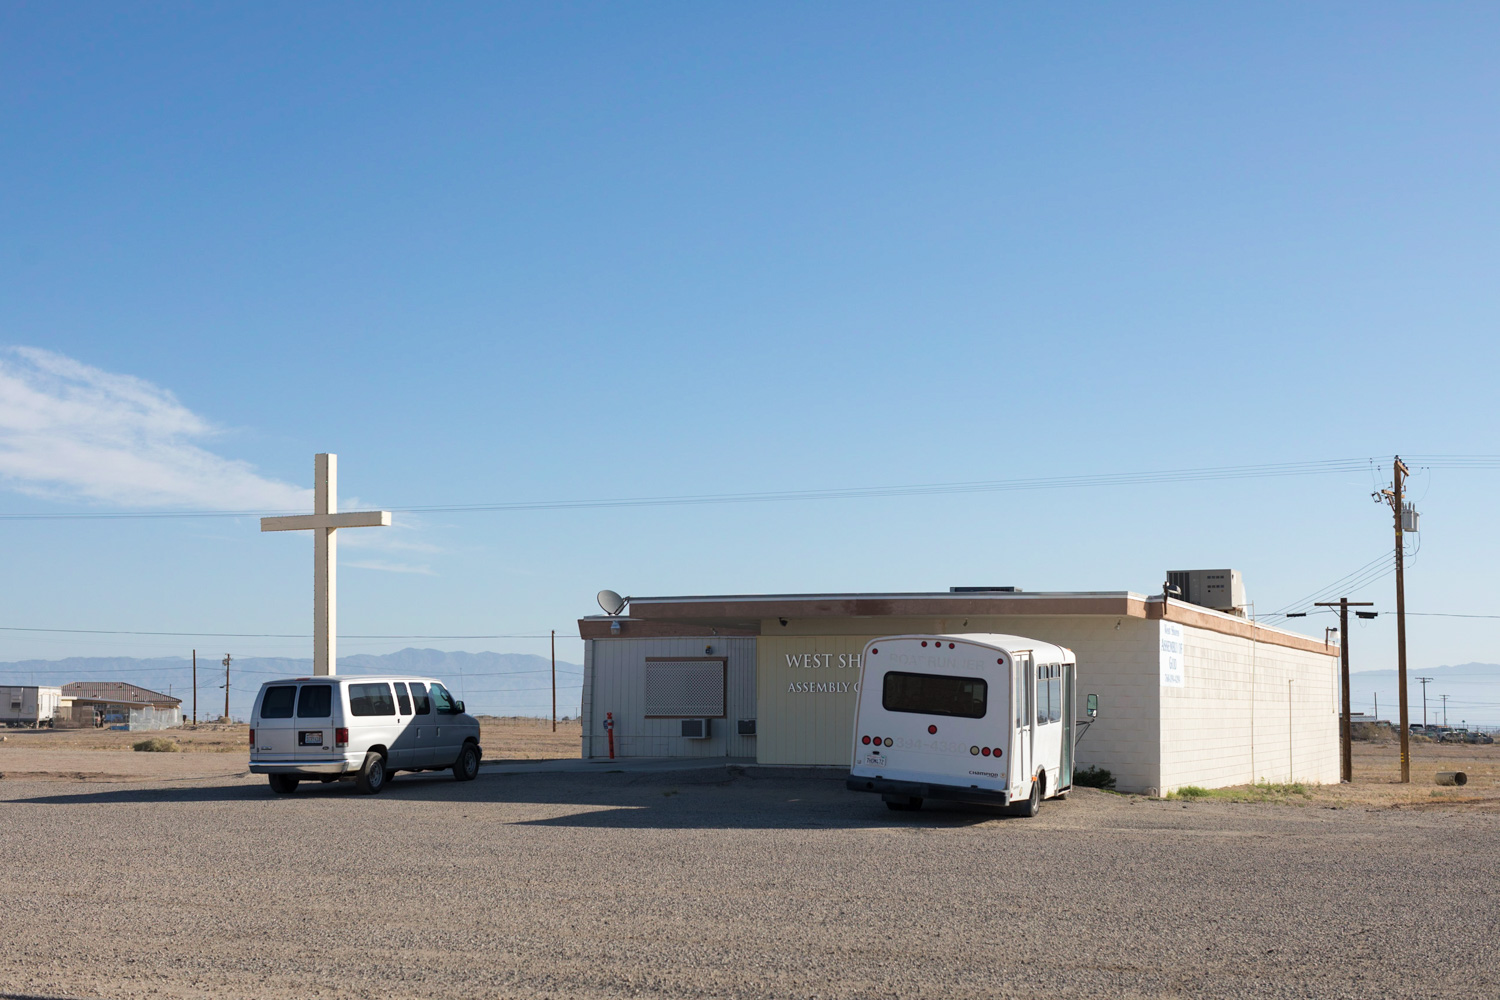 West Shores Assembly, Salton City